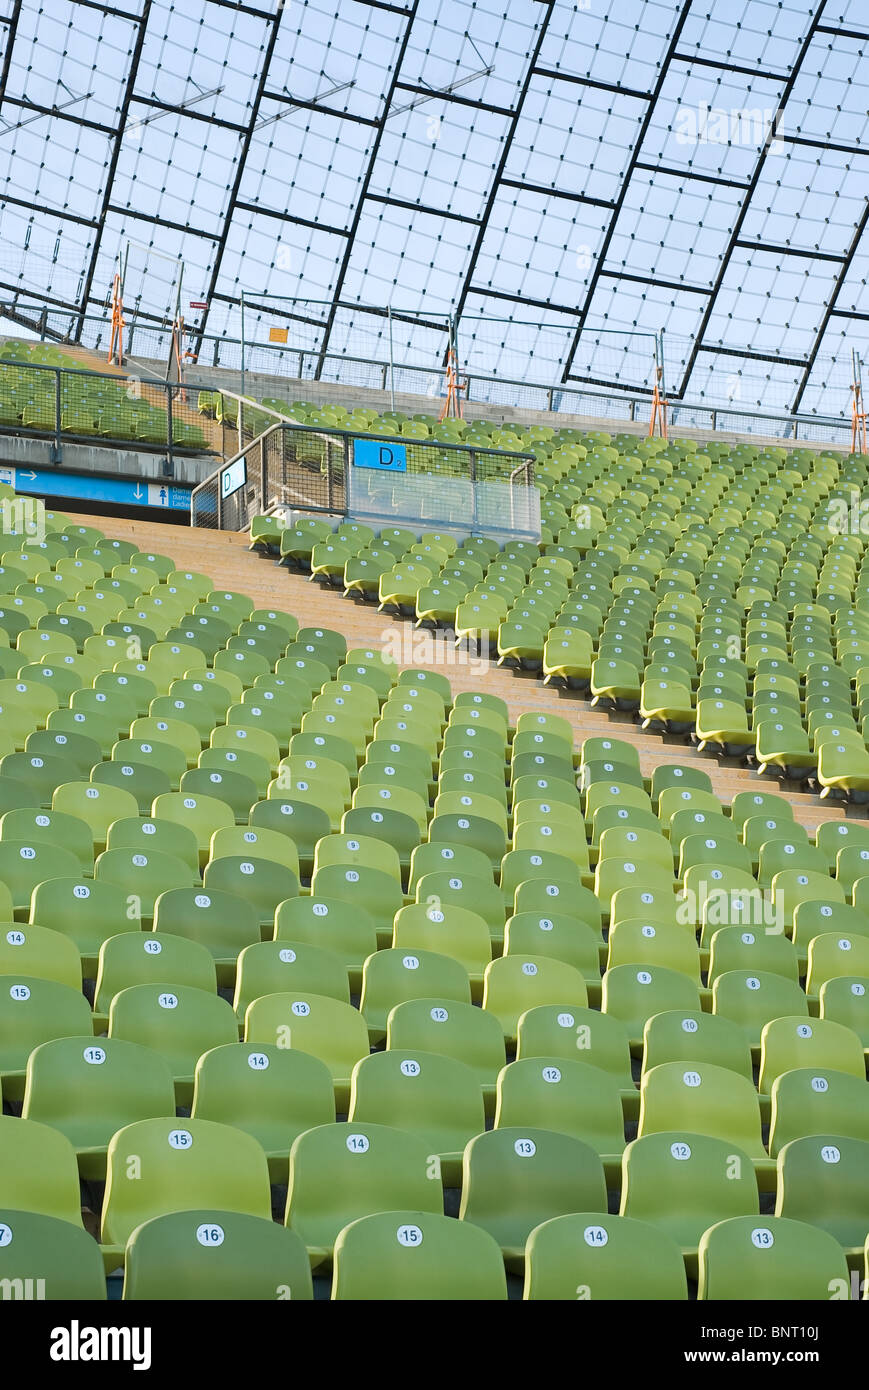 Athletic Stadium with Rows of Empty Seats - Stock Image